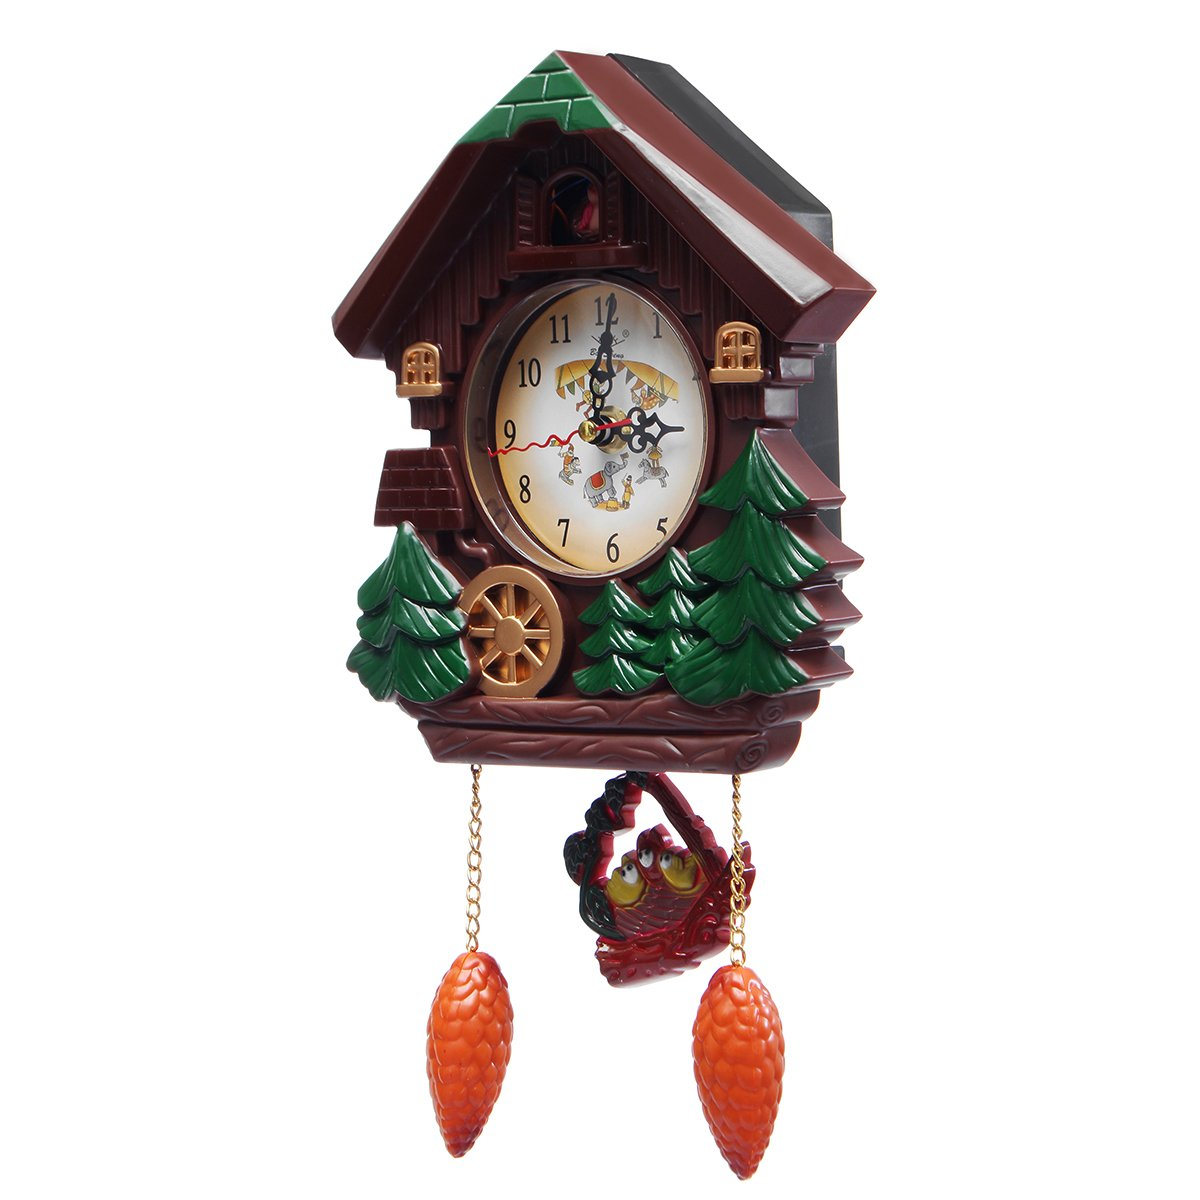 HAPYLY Handcrafted Wall Cuckoo Clock for Living Room Office Classroom Wall Decor Gift